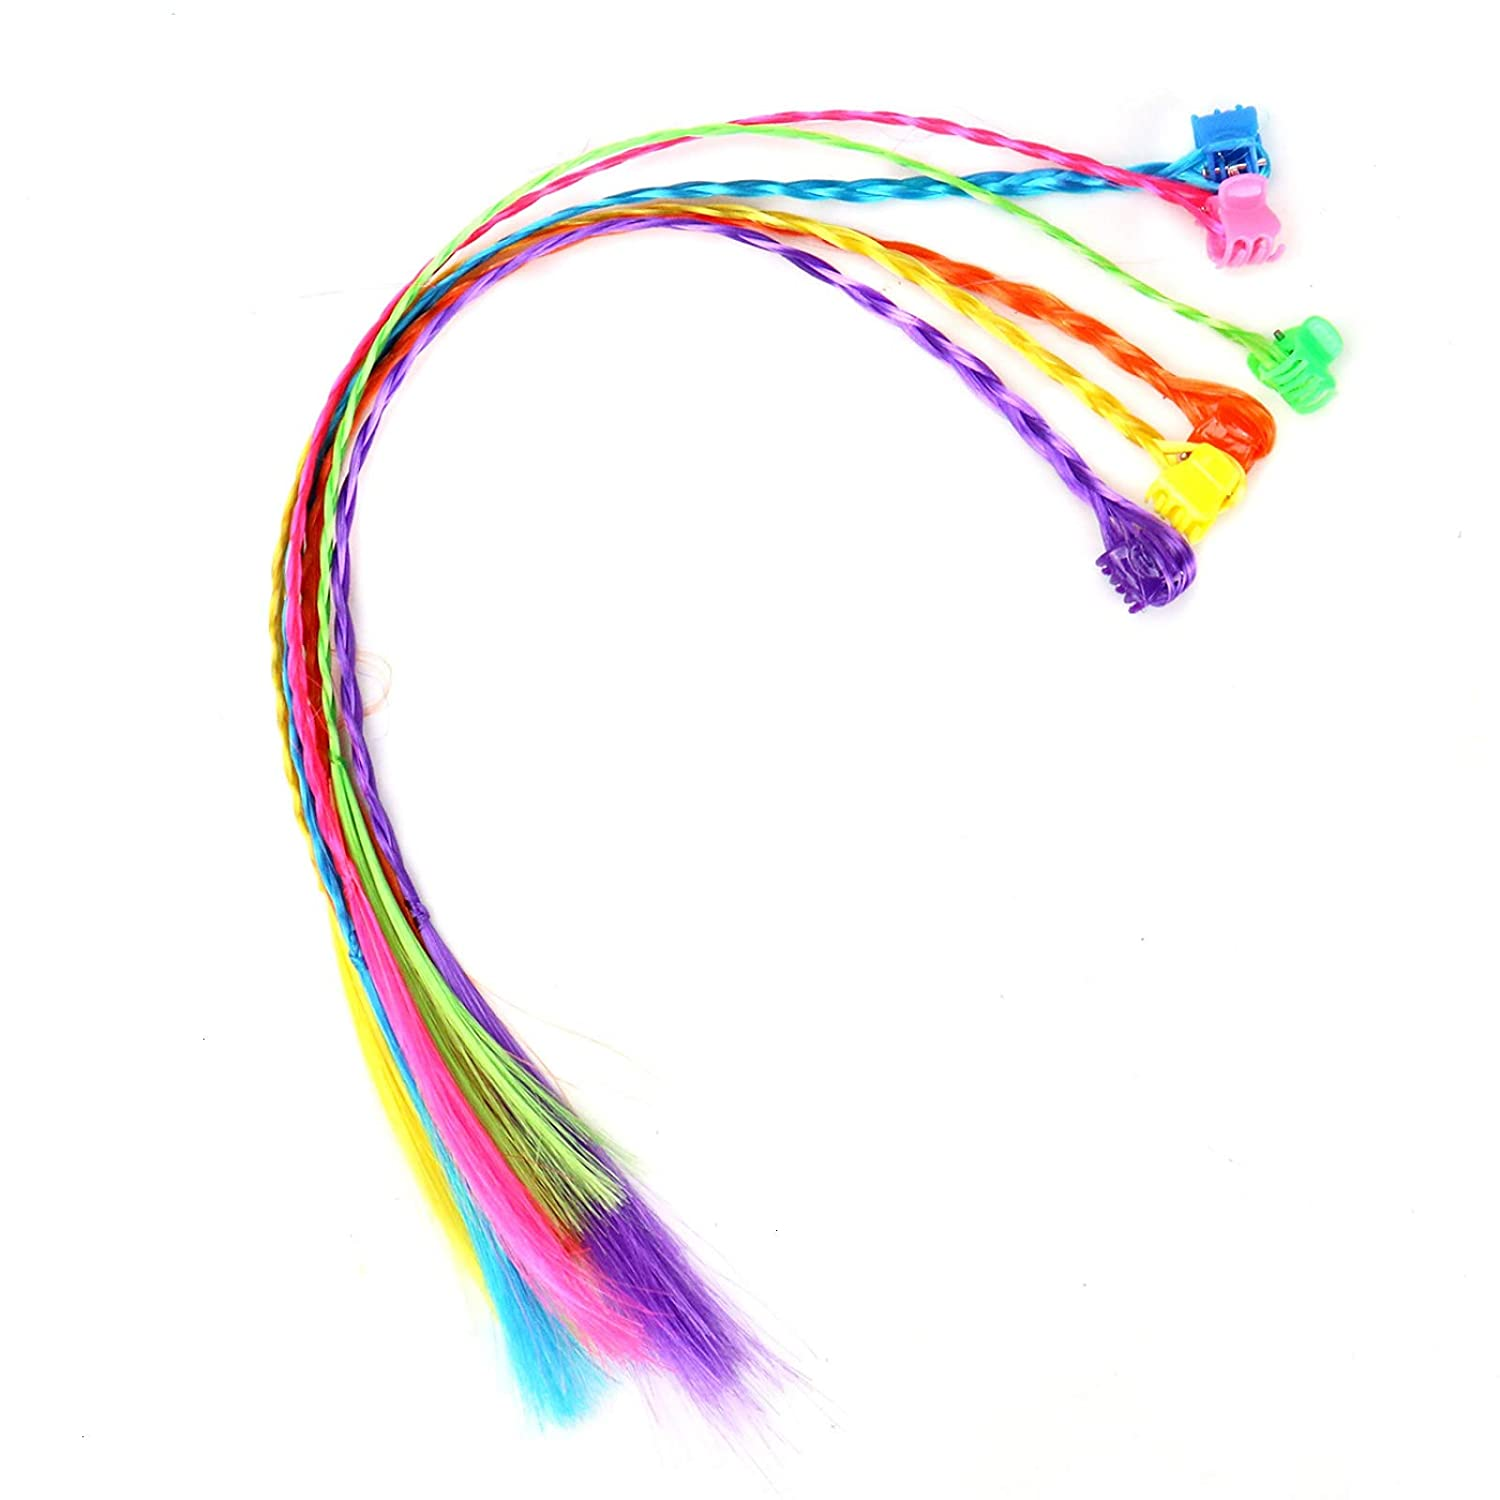 WSSROGY 24 Pieces Nylon Braided Hair Neon Hair Braid Extensions Attachments with Neon Clip Snaps for Birthday Party Favors and Children Performance 7 Colors